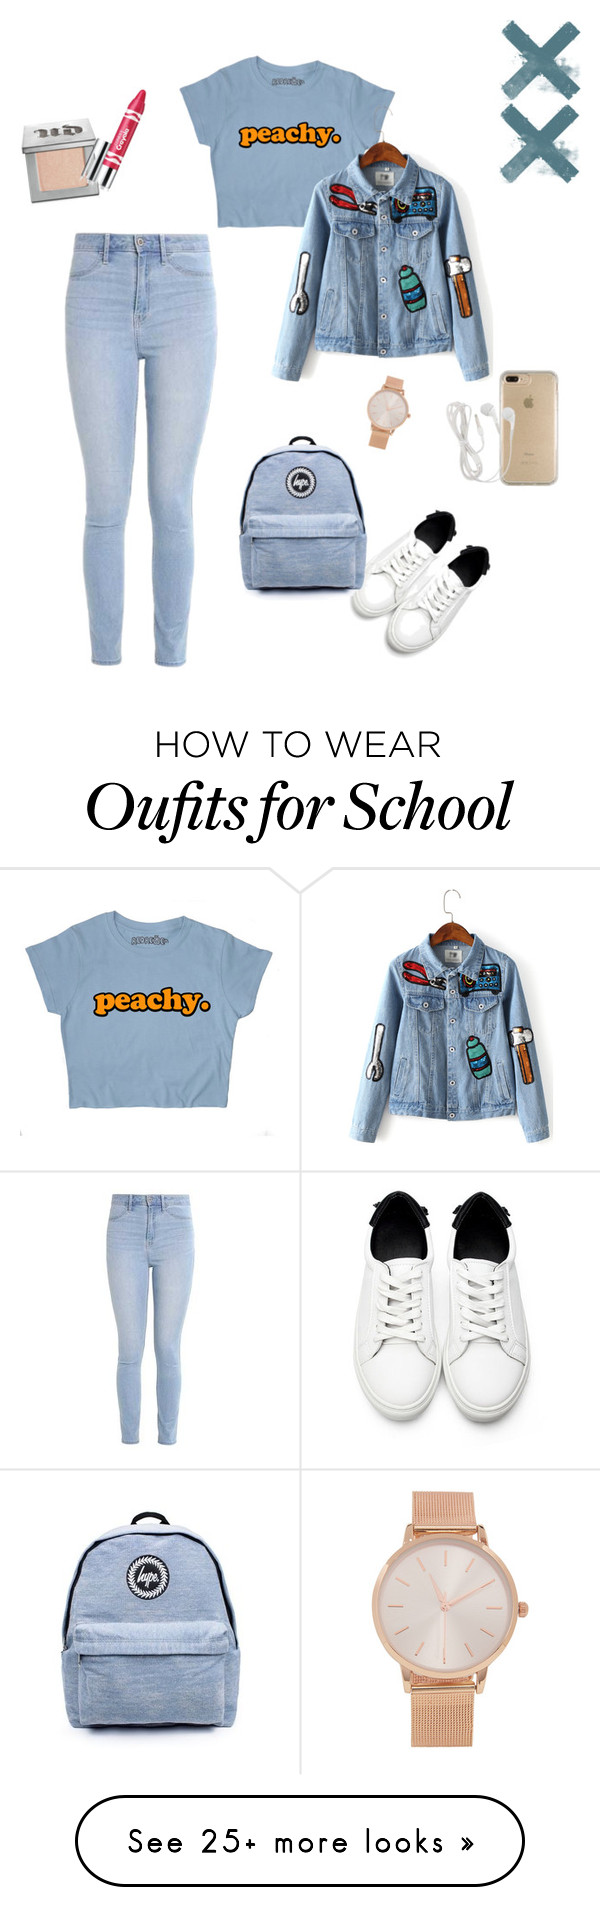 """""""School Set"""" by dynzaavi on Polyvore featuring Hollister Co., Topshop, Urban Decay, Clinique, Speck and Aéropostale"""